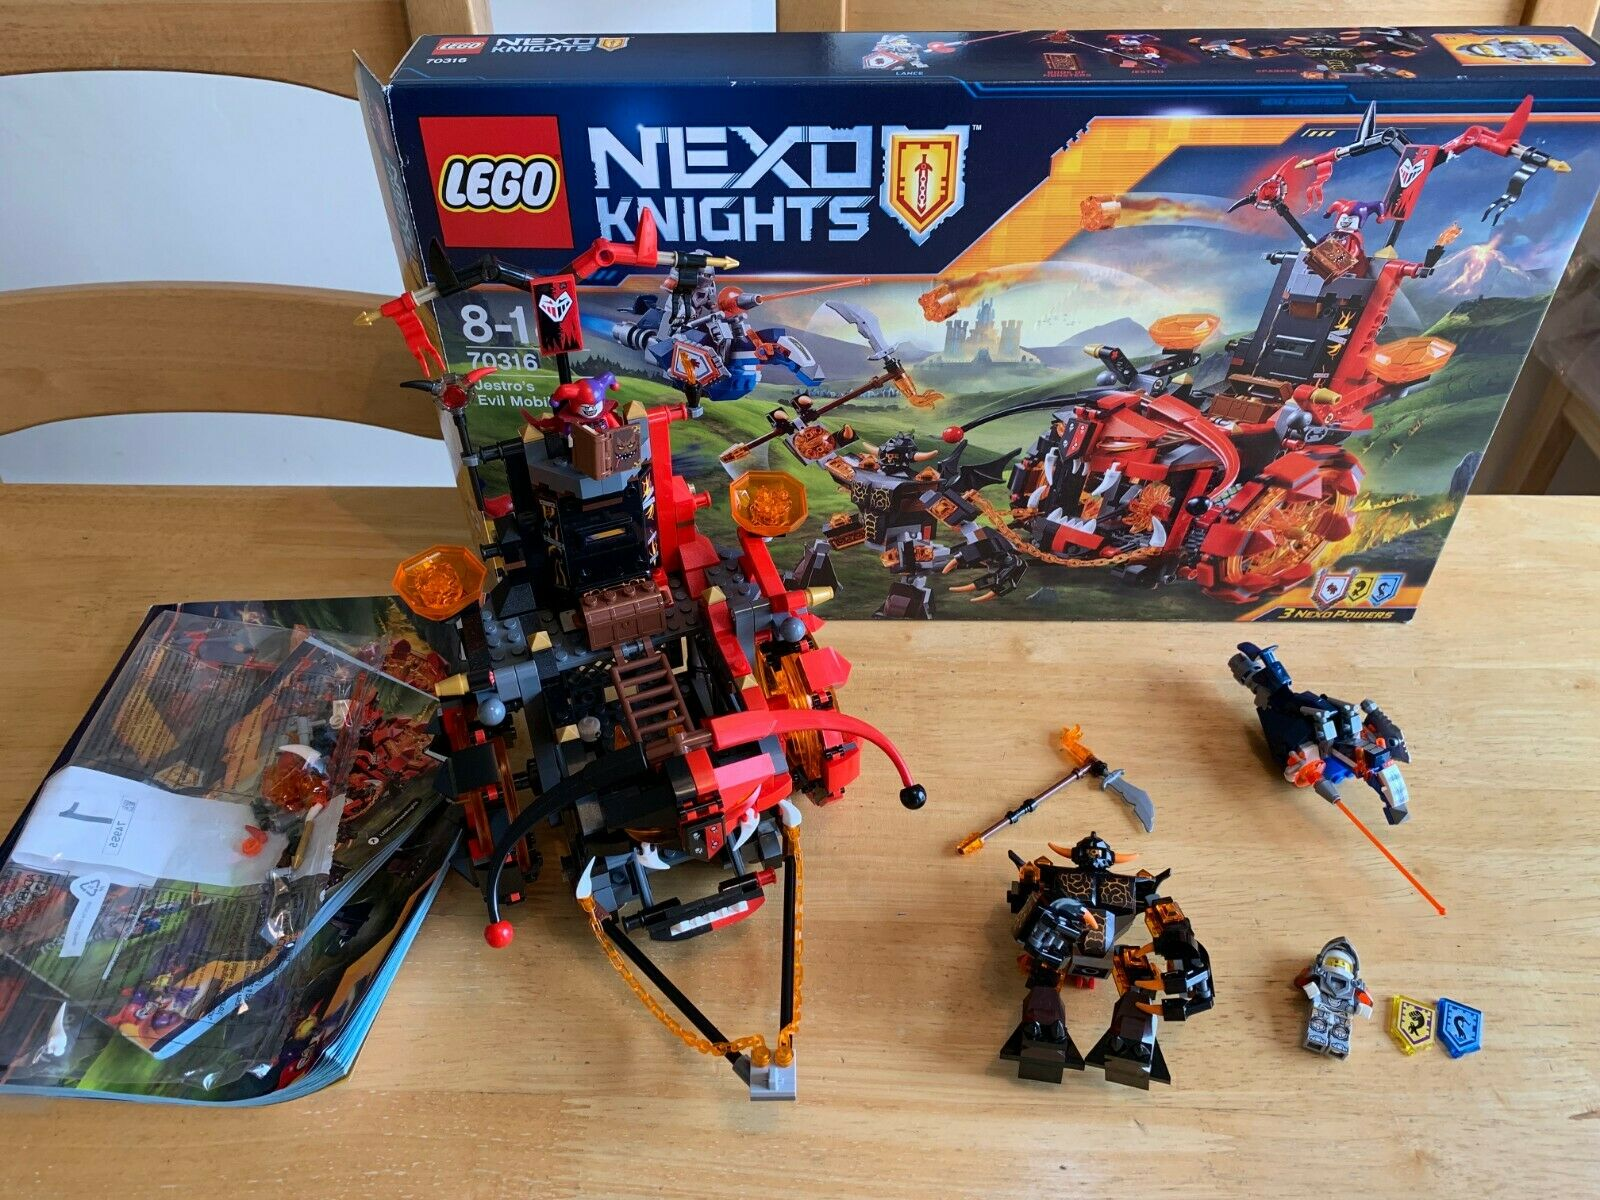 HUC REAL LEGO NEXO KNIGHTS JESTRO'S EVIL MOBILE - 70316 COMPLETE WITH BOX